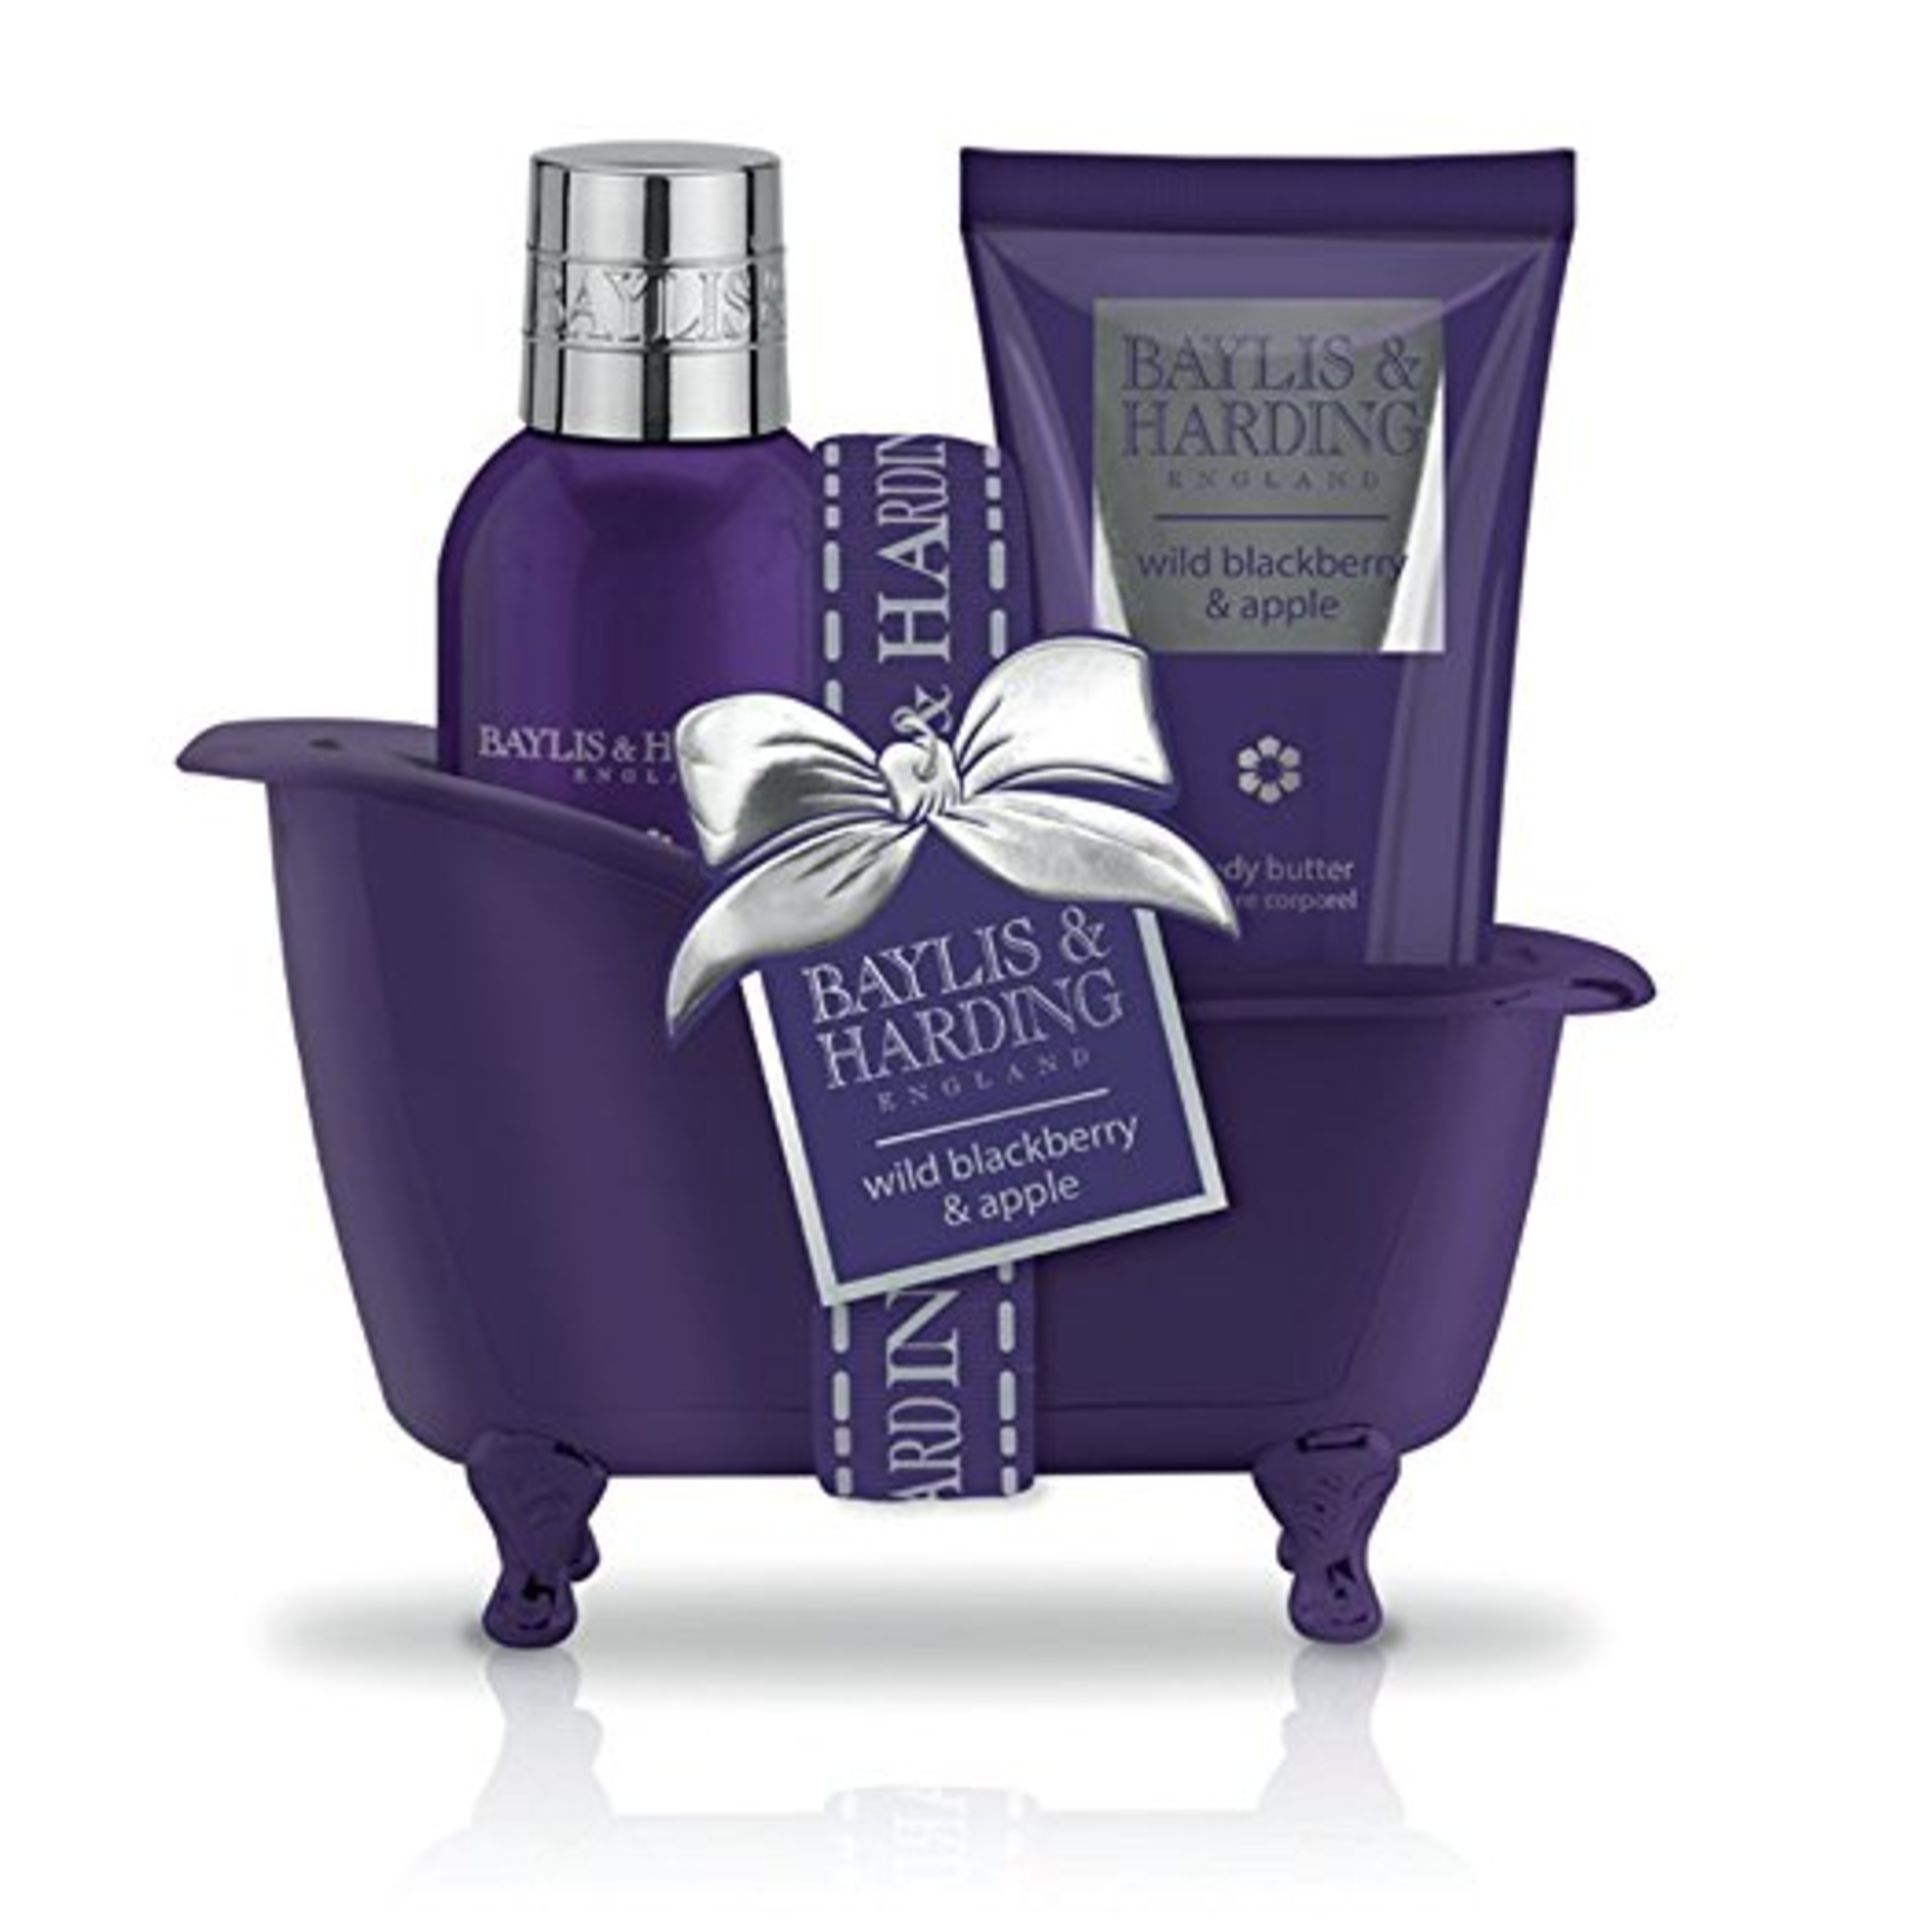 + VAT Brand New Baylis & Harding Wild Blackberry & Apple Bath Set - Image 2 of 2